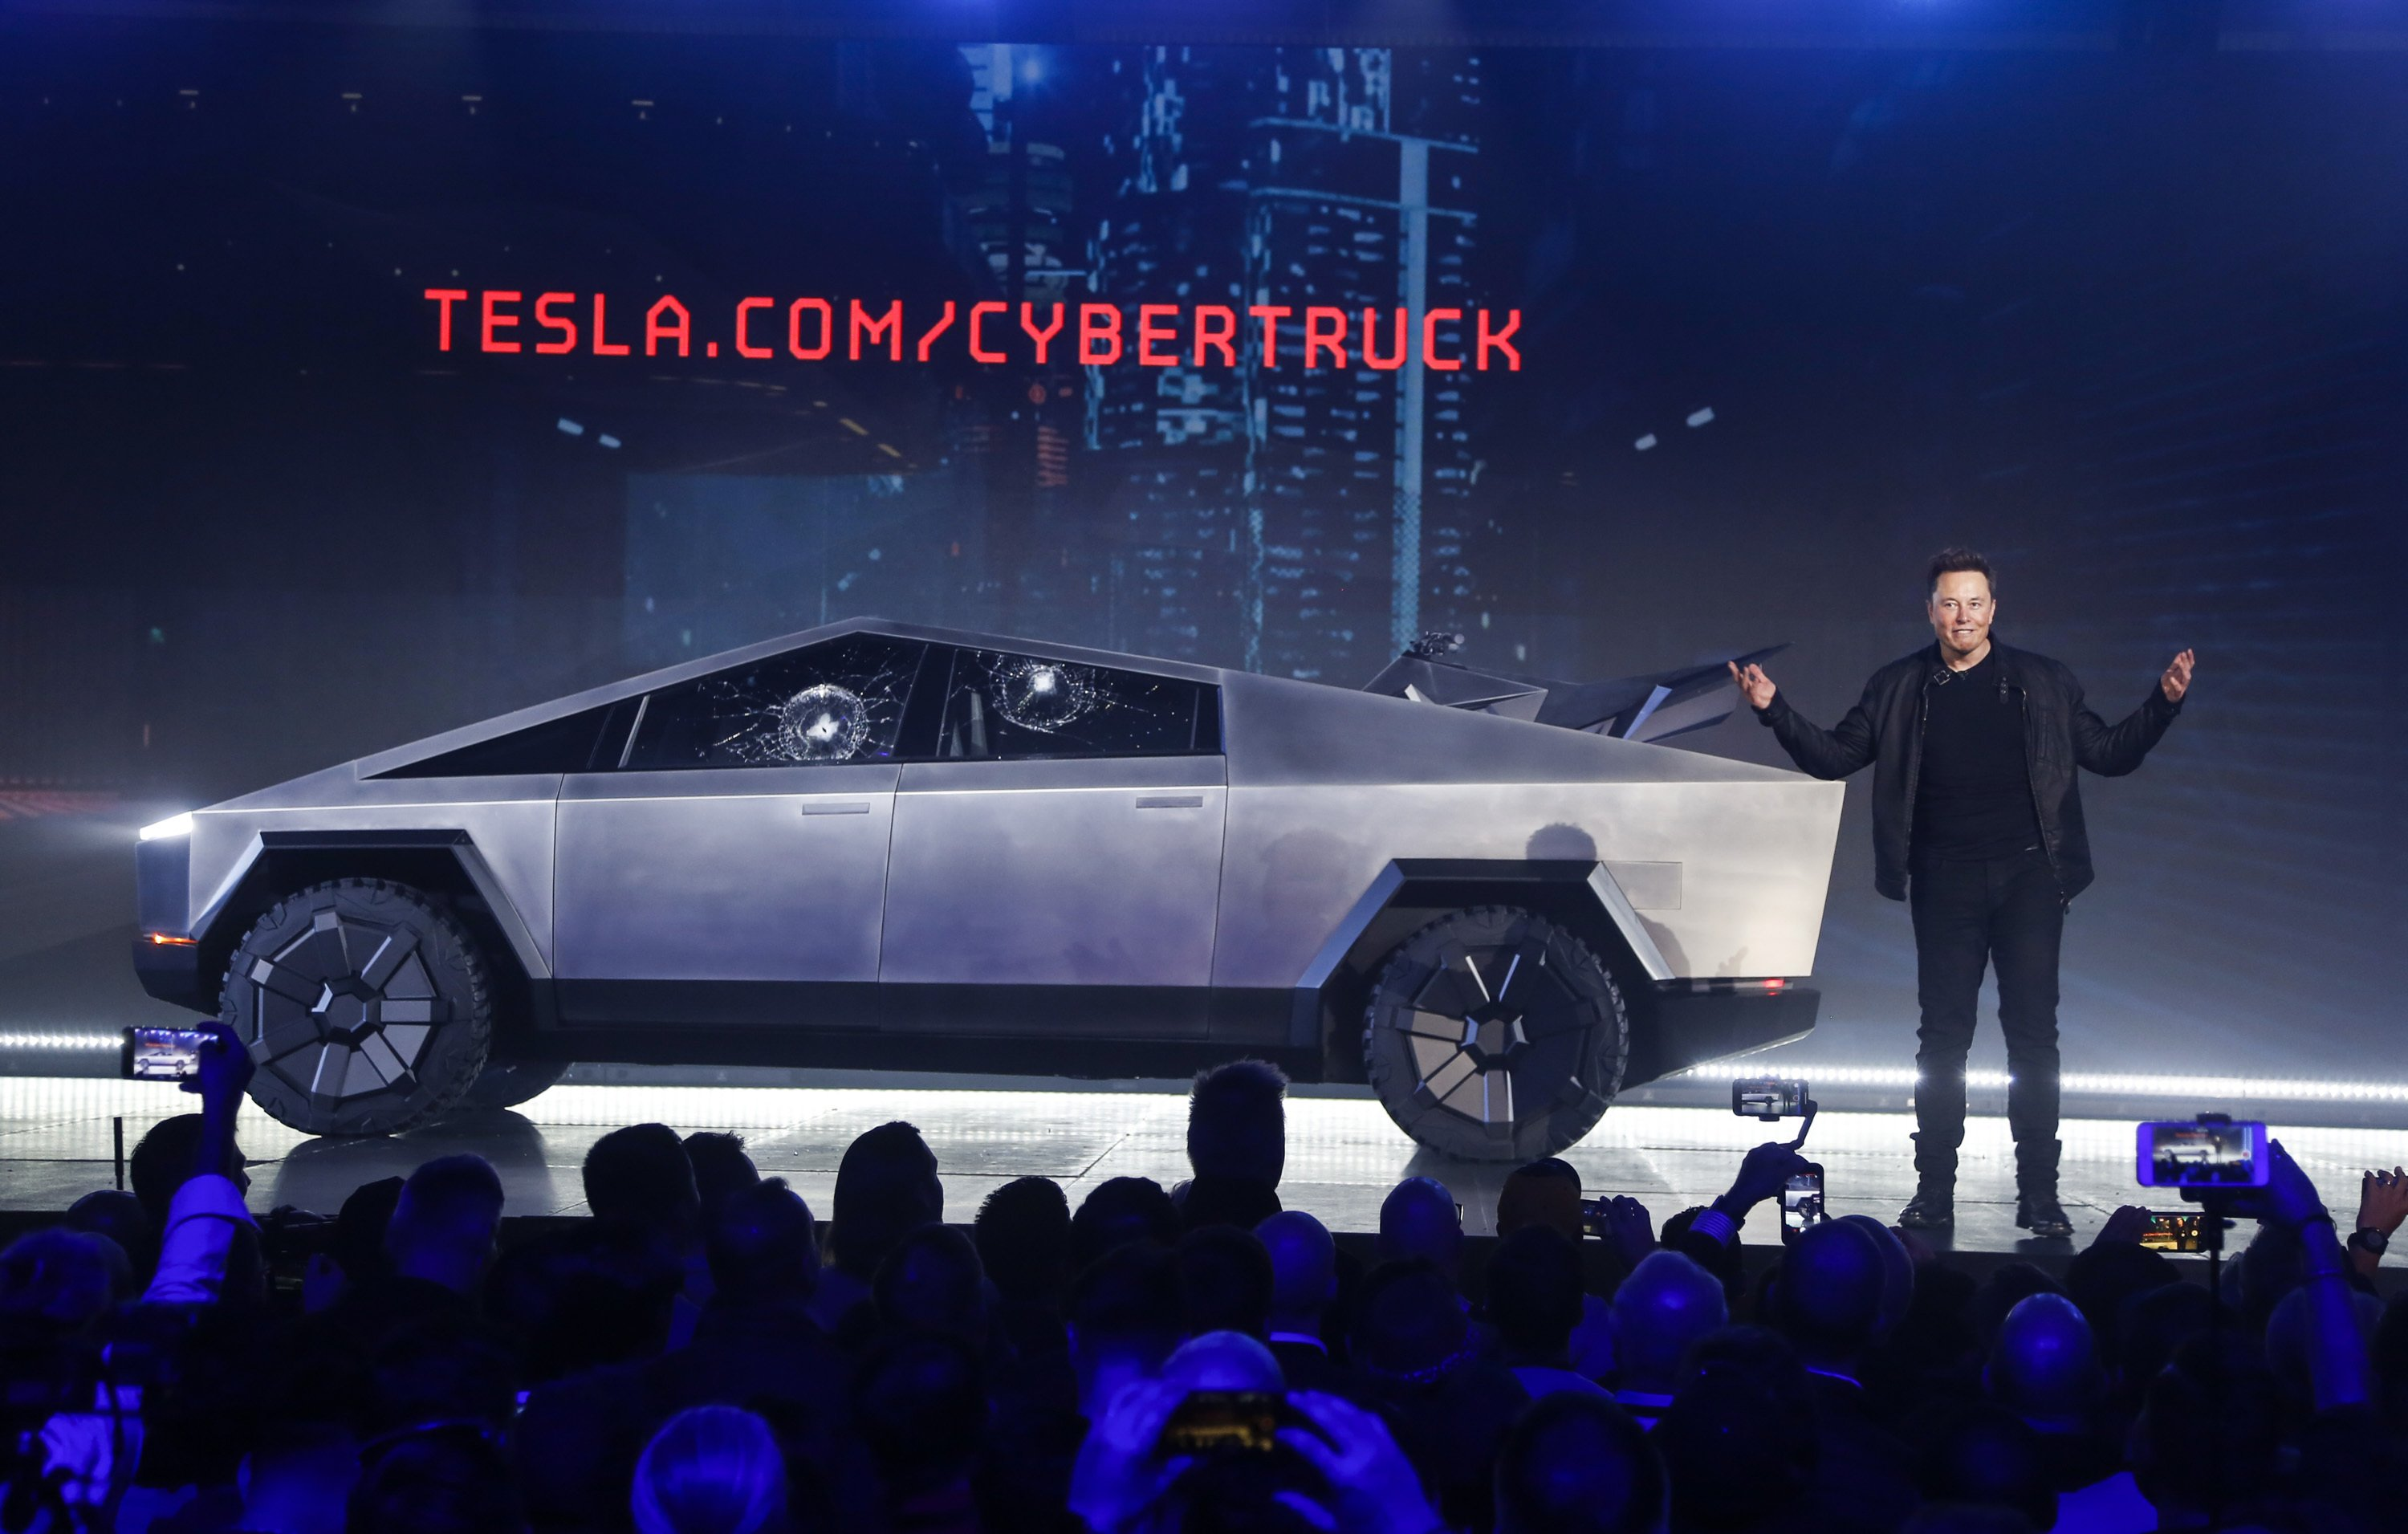 Tesla unveils 'bulletproof' Cybertruck — but it doesn't go quite as planned